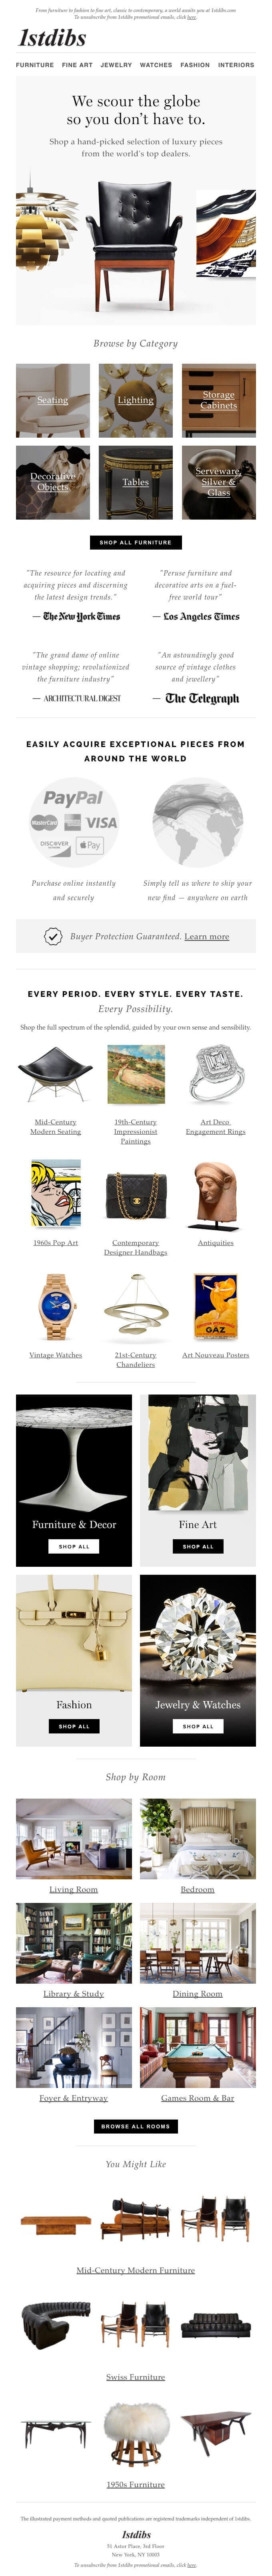 1stdibs email example